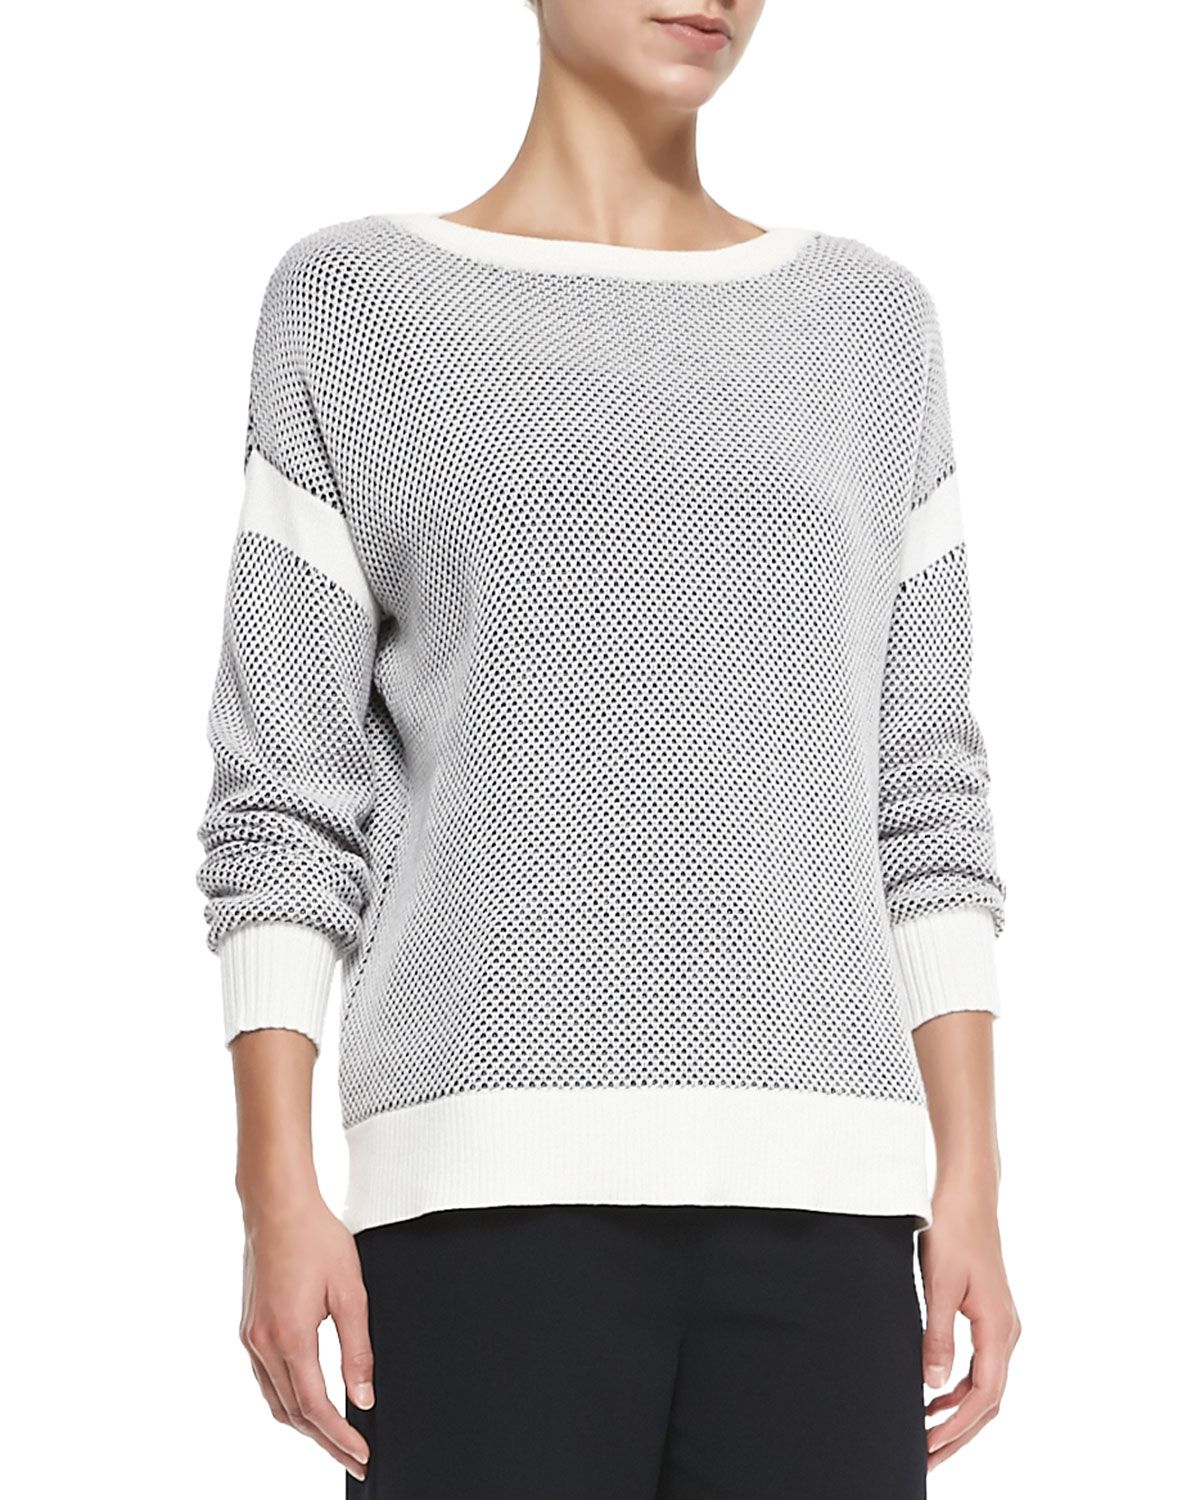 Two-Tone Perforated Knit Sweater, Off White/Coastal - Vince